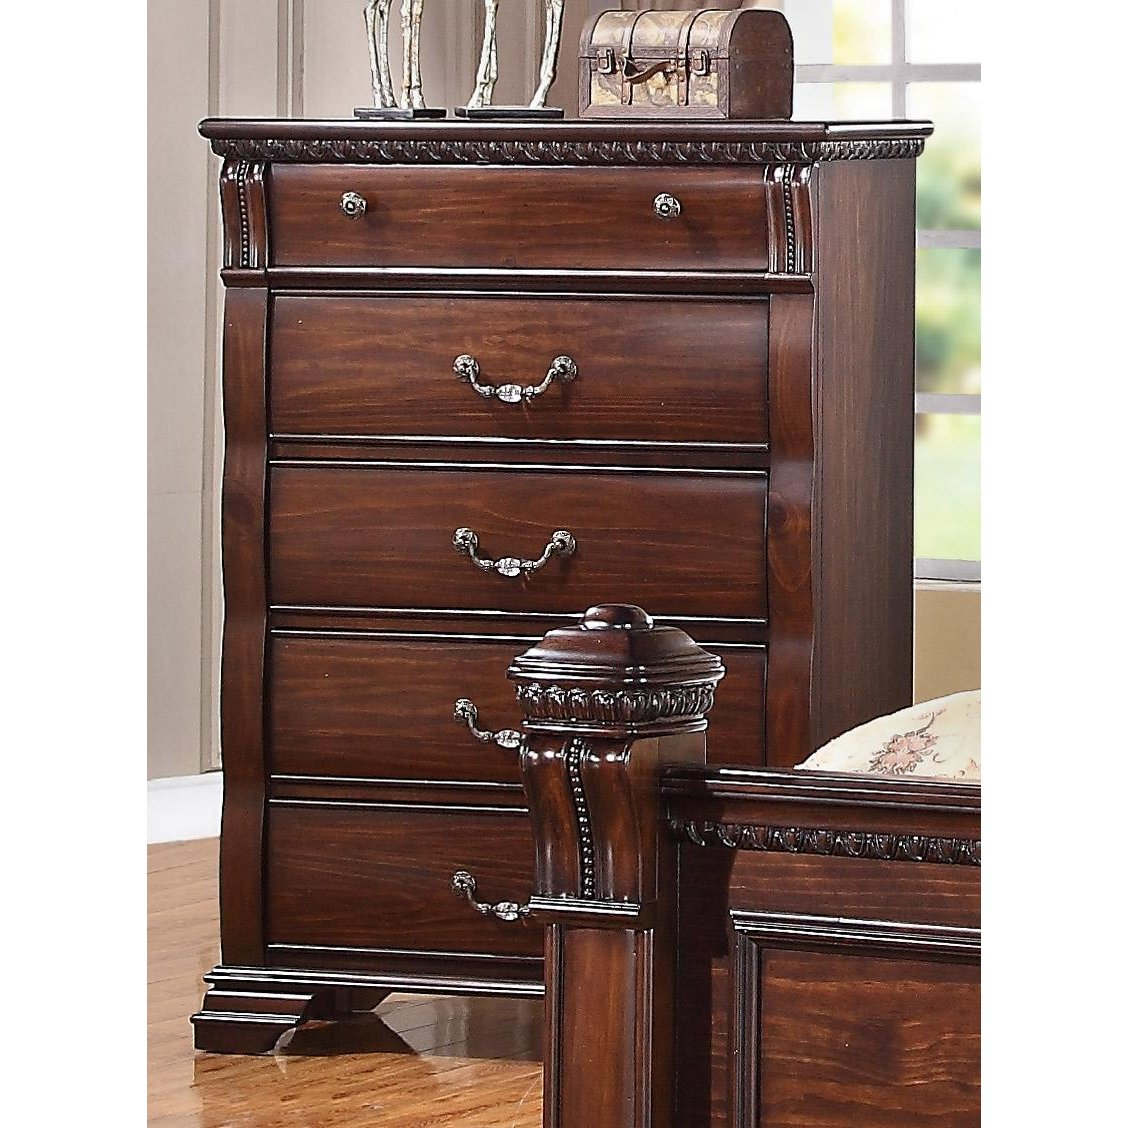 antique dresser to f storage wonderful circa chest chests case pieces pine victorian dating commodes drawer a master century s drawers id furniture stripped of